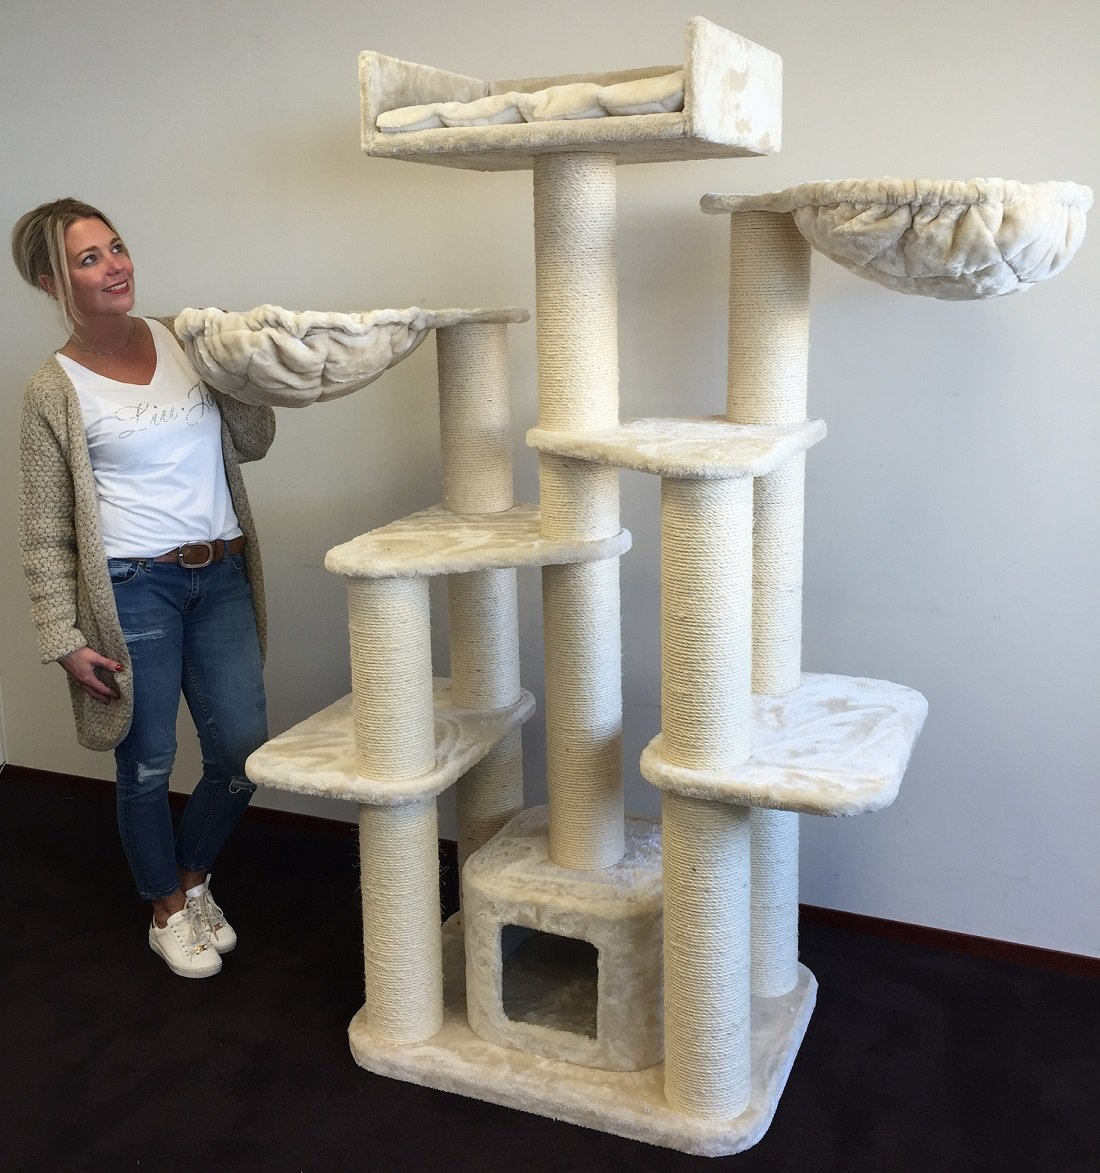 Cat Tree For Large Cats Cat Empire Beige 72 inch high 143 pounds total weight Activity Tree With Scratching Posts Condo House Big Cats Hammock Large Beds Tower Furniture Sale